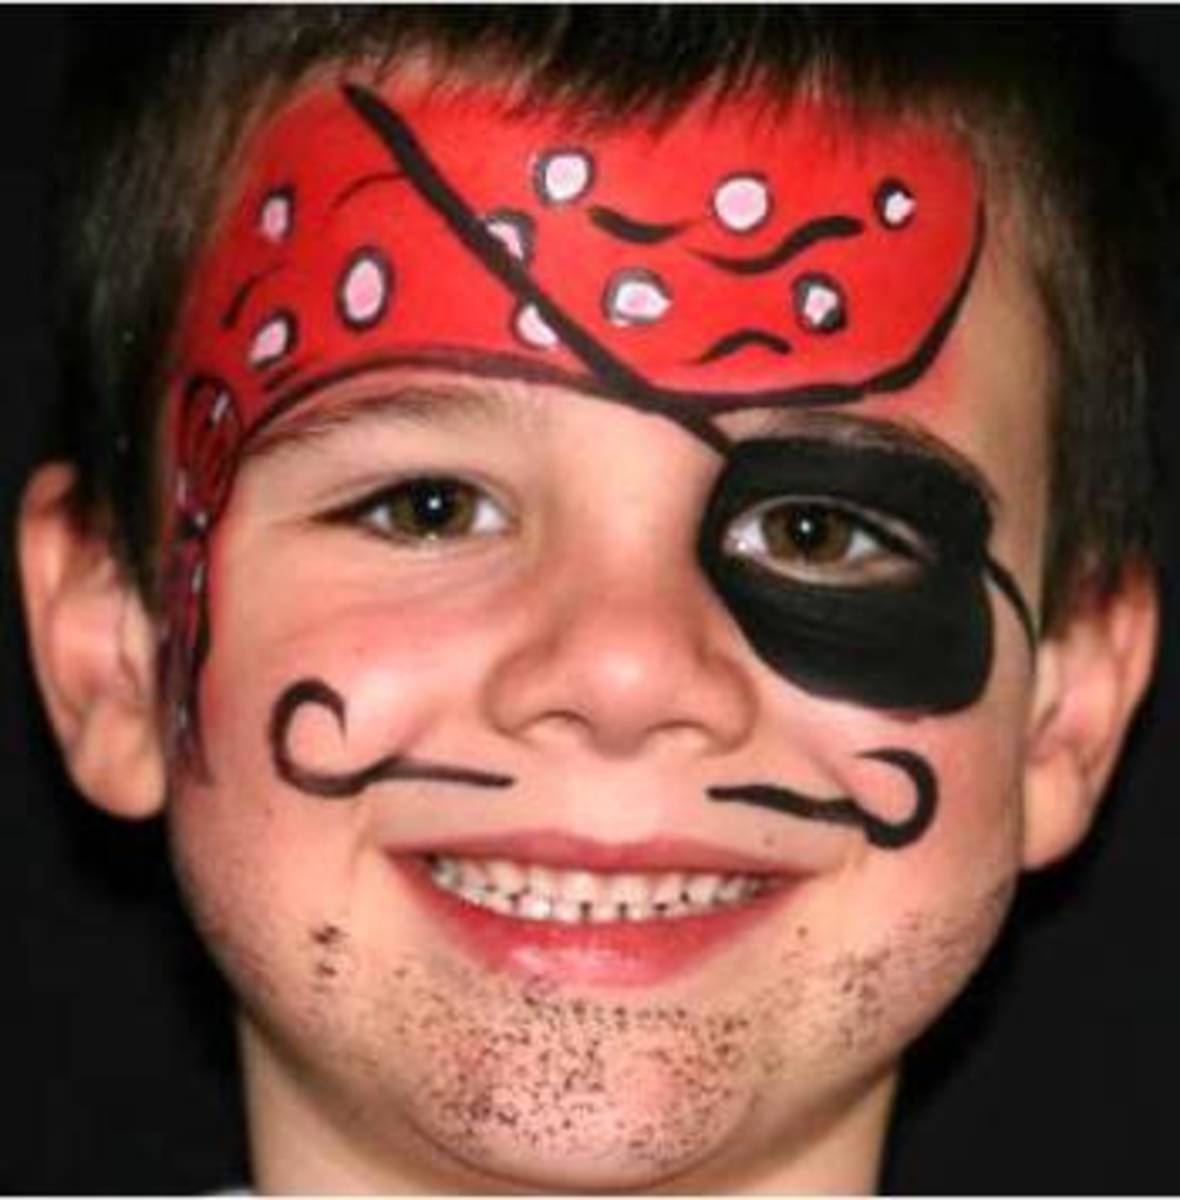 Pirate Face Painting for Children: Tutorials, Tips, and ...